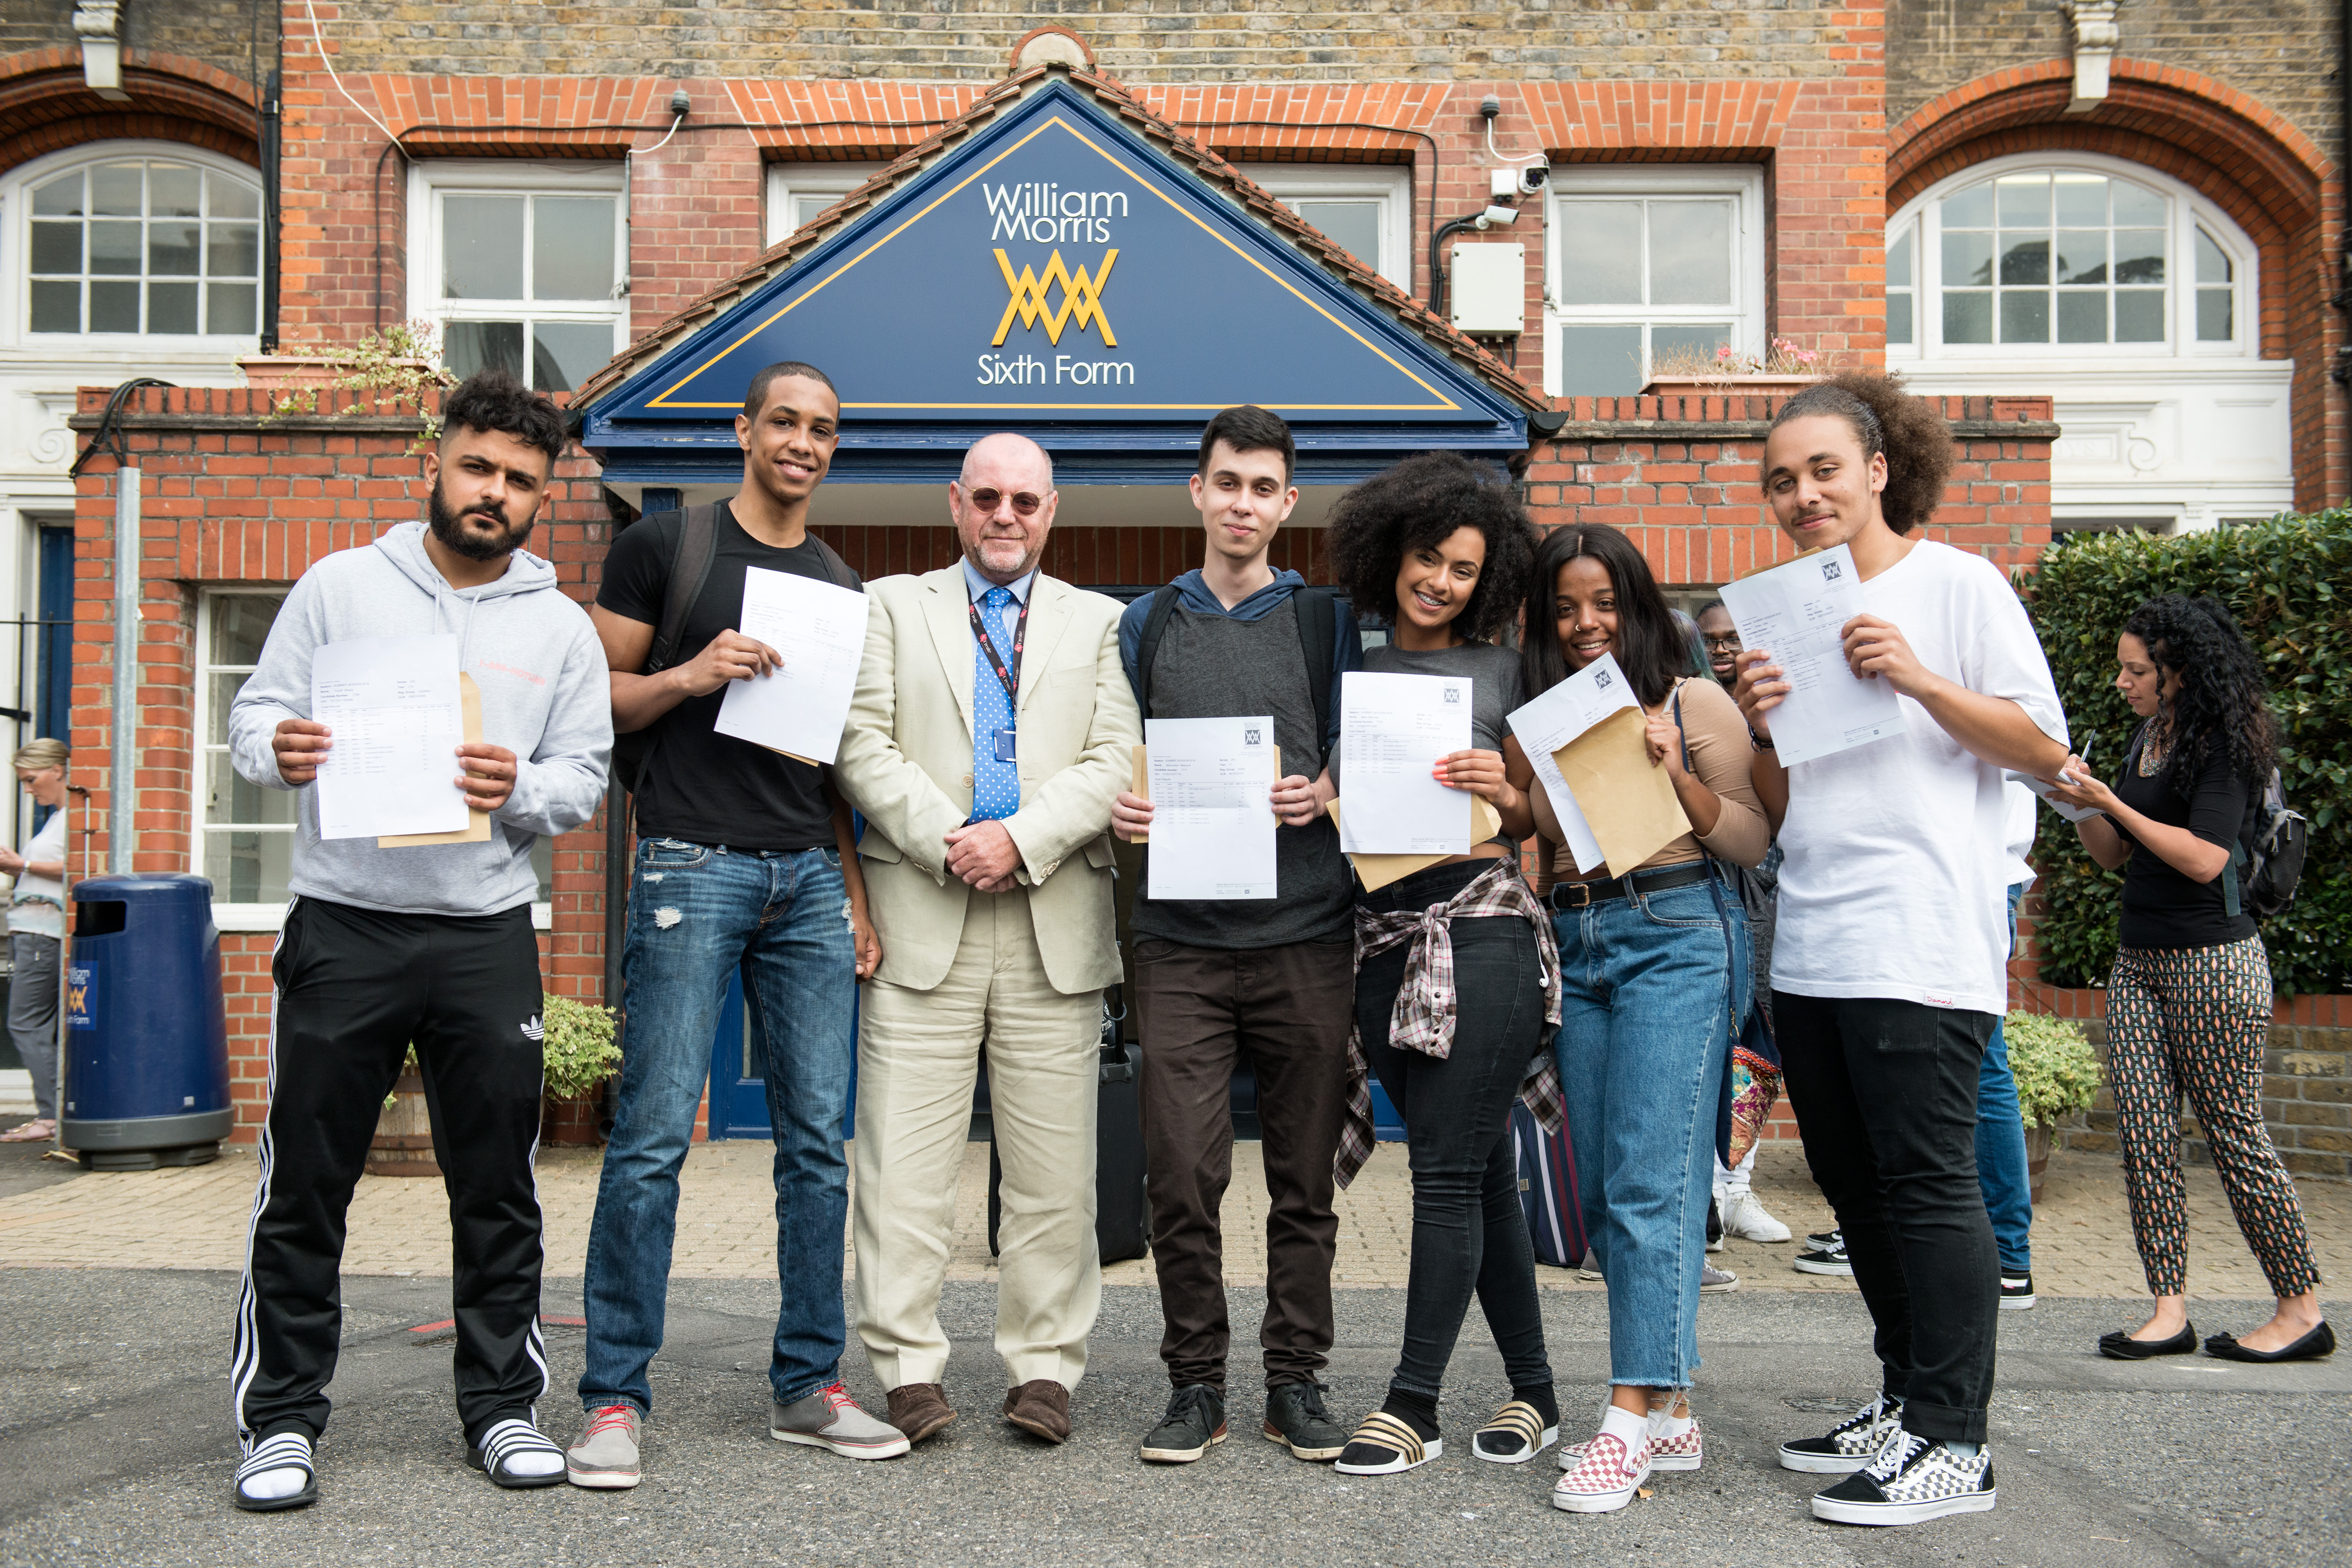 william morris sixth form students achieve some of their